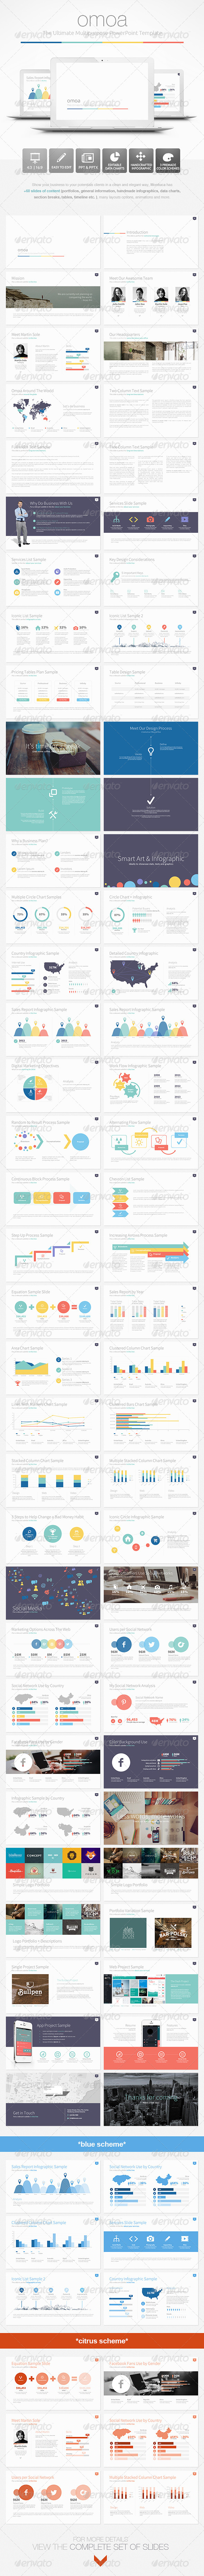 GraphicRiver Omoa Ultimate Multipurpose PowerPoint Template 6994073